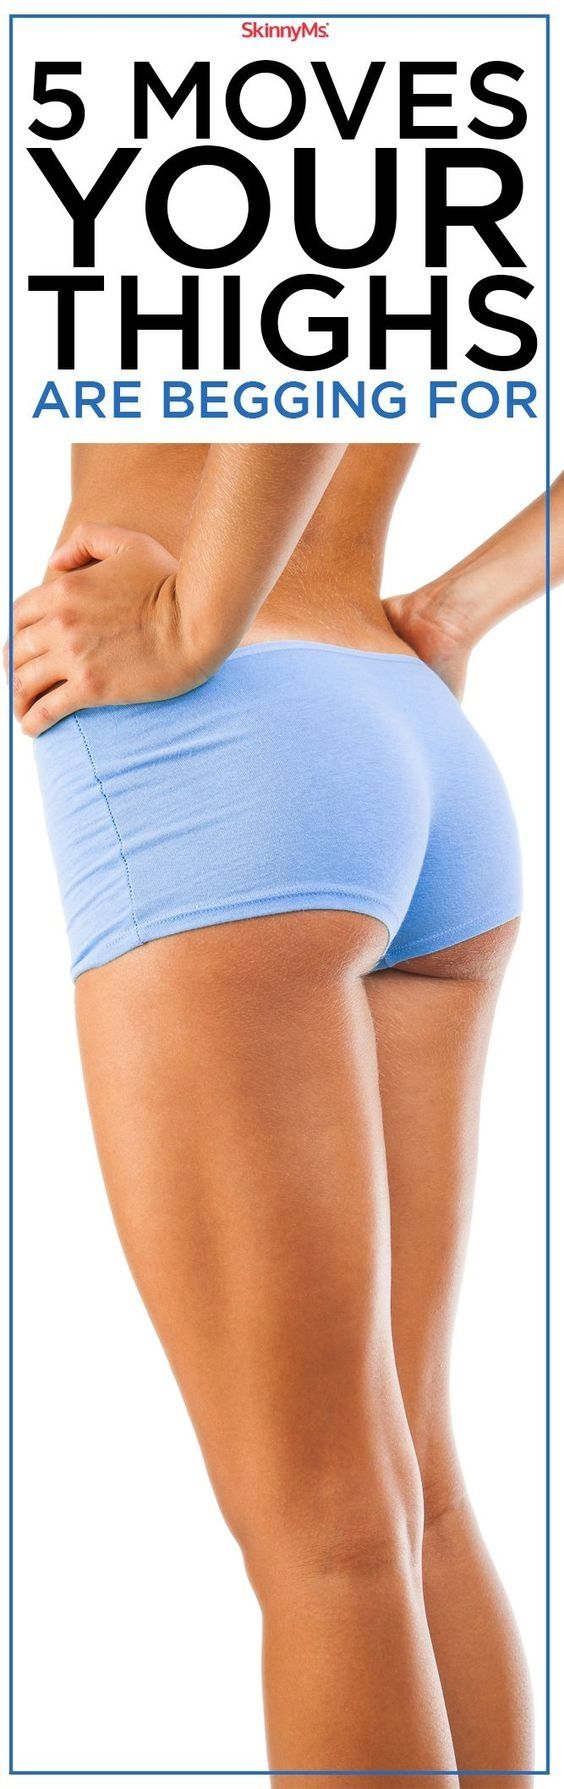 5 Easy Moves To Tone Your Legs Fast